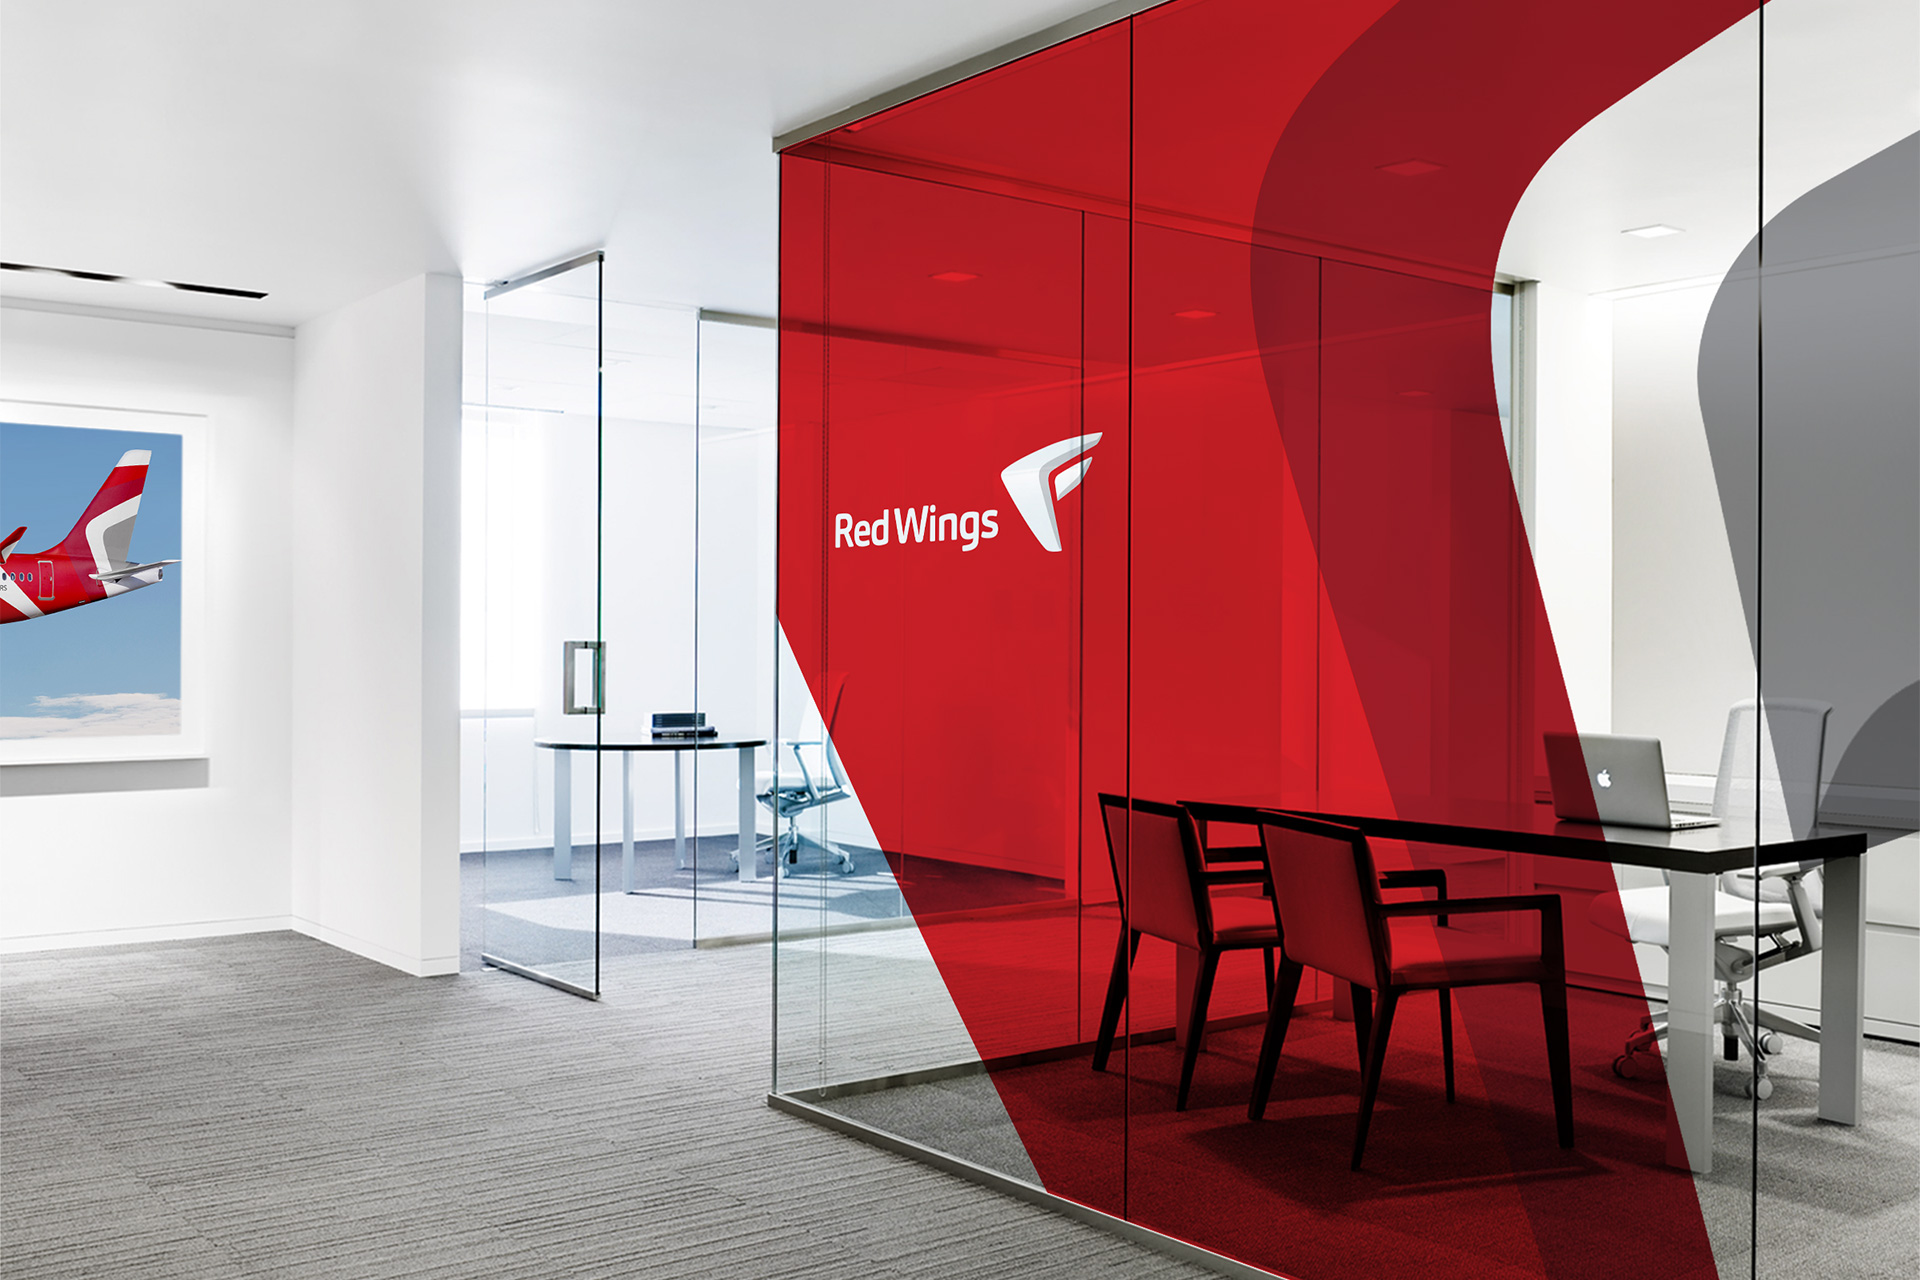 Asgard, Red Wings, airlines, брендирование офиса, red office, red wall